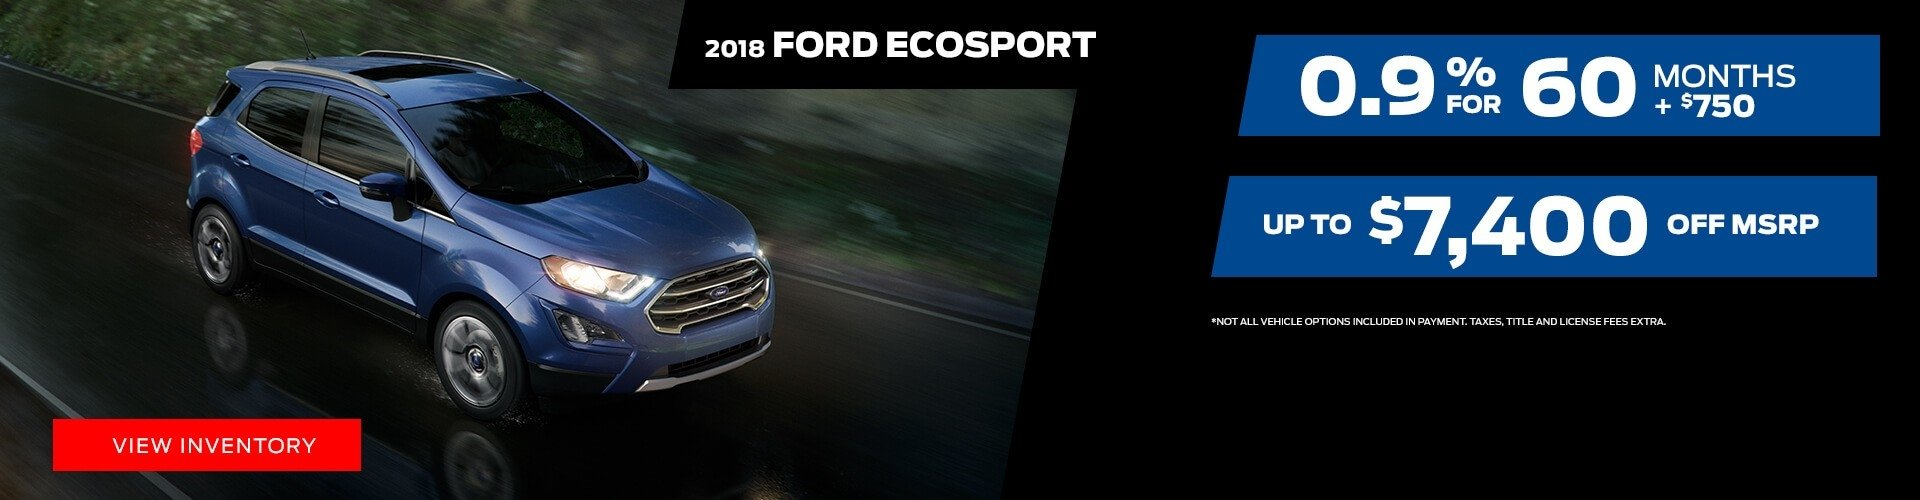 2018 Ford Ecoport